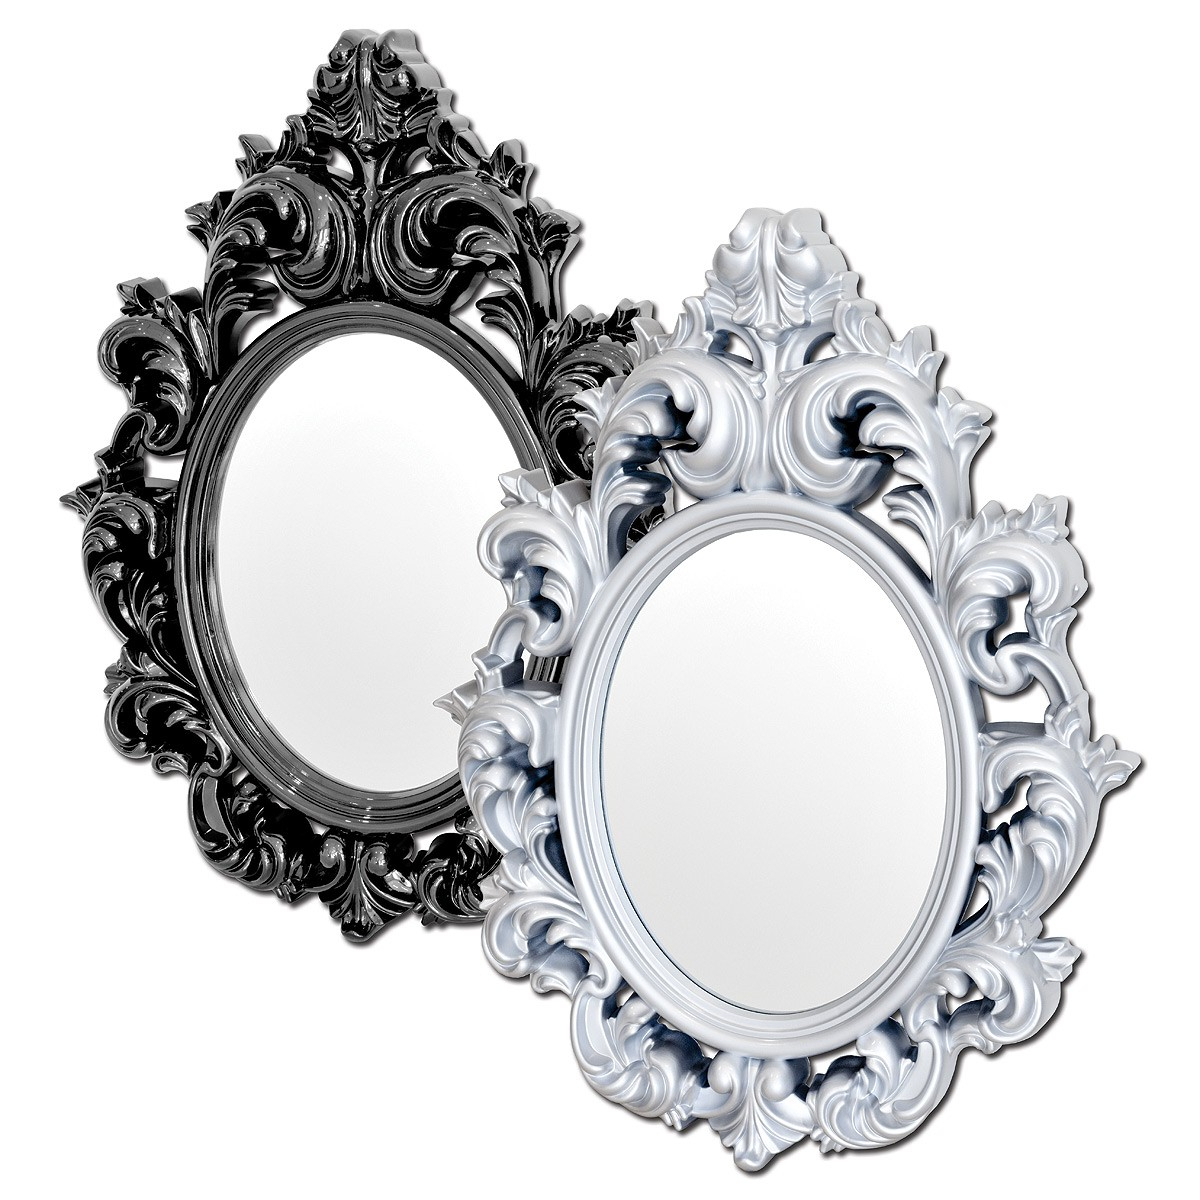 Popular Cheap Black Wall Mirrors In Ideas: Awesome Ornate Mirrorhand Crafted Mirrors Ideas (View 17 of 20)